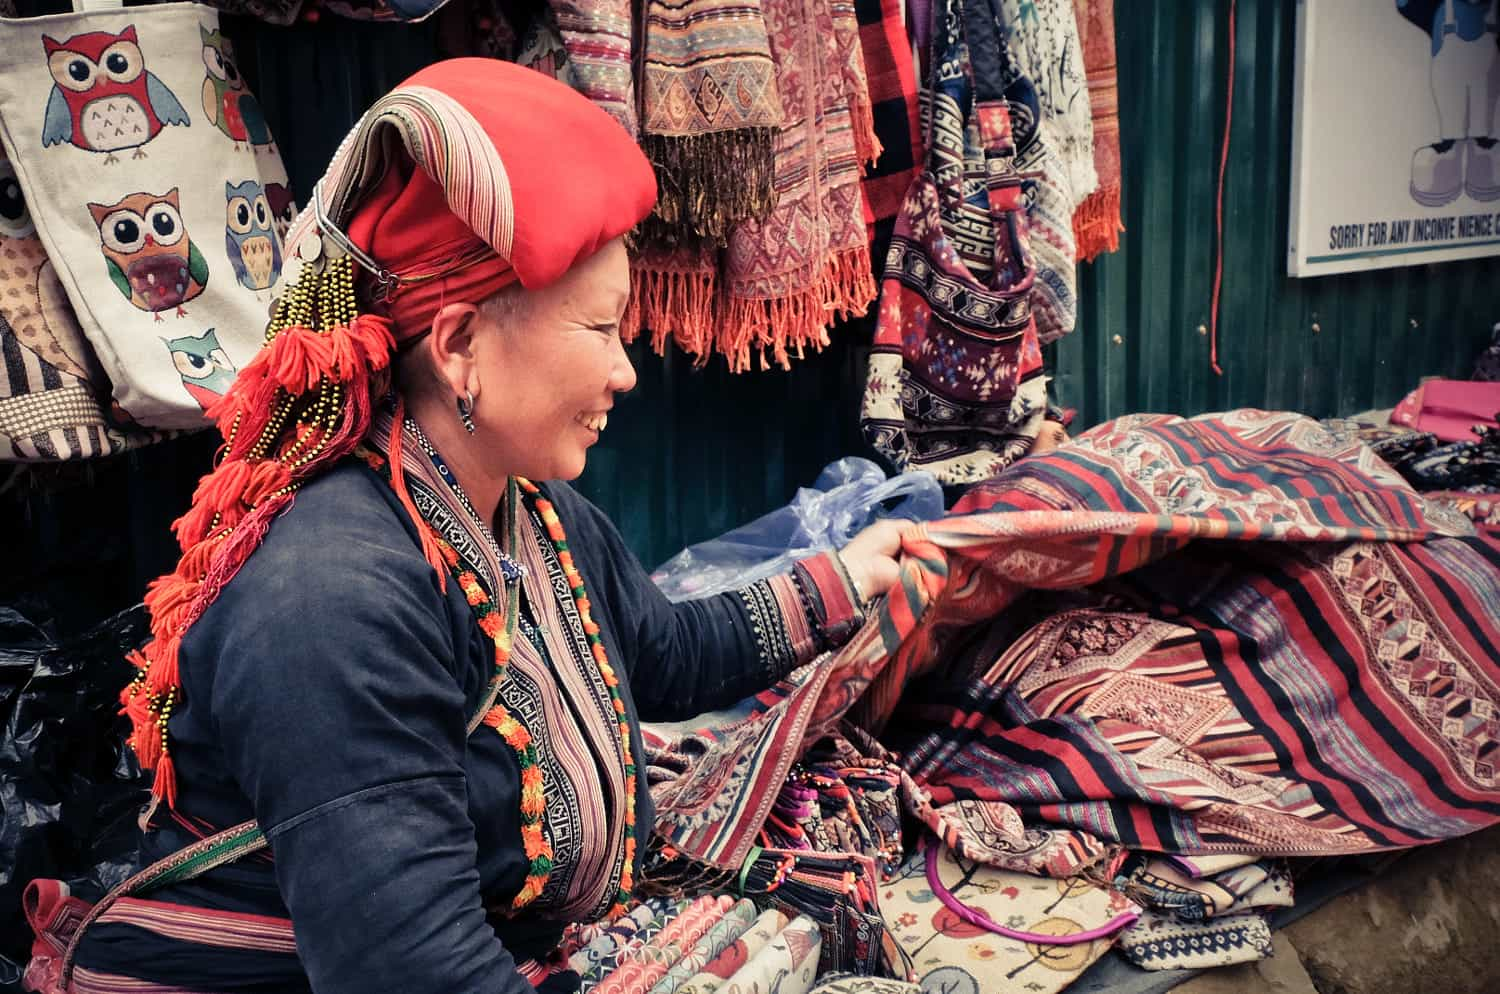 sapa market in decem G9ClK - Top 10+ Unique & Amazing Things To Do in Sapa, Vietnam - Updated 2021